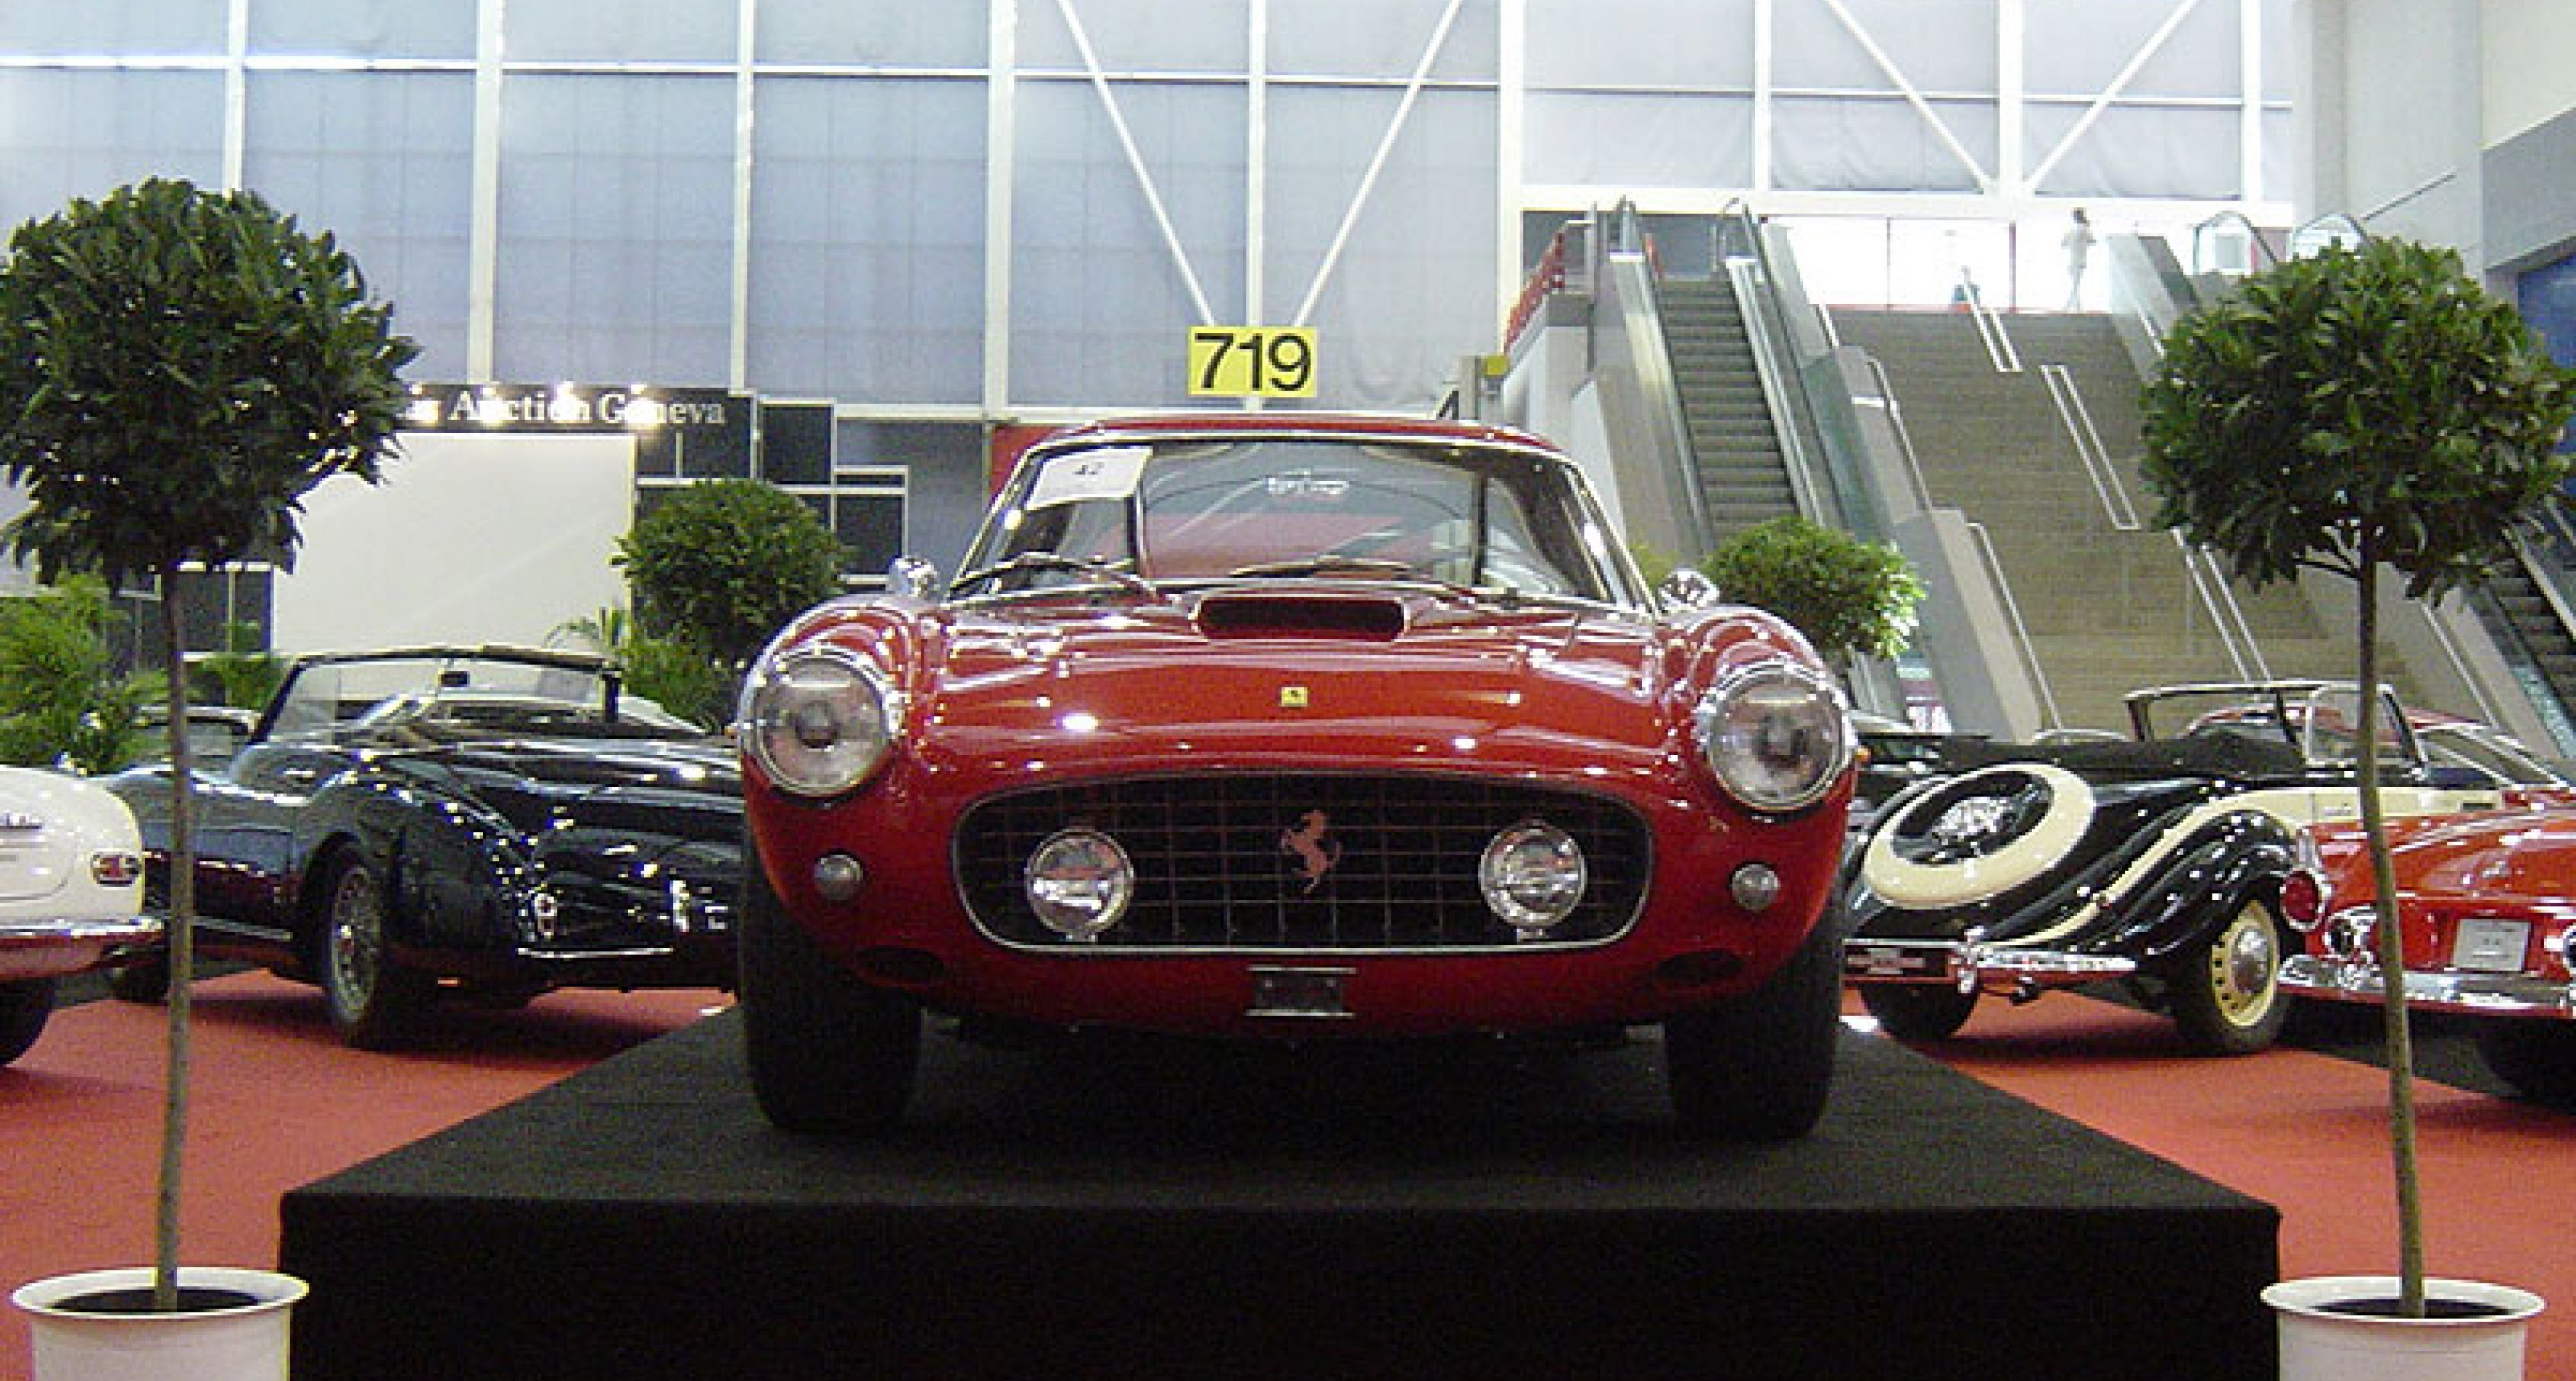 The Sportscar Auction Geneva 7th October 2006 - Review